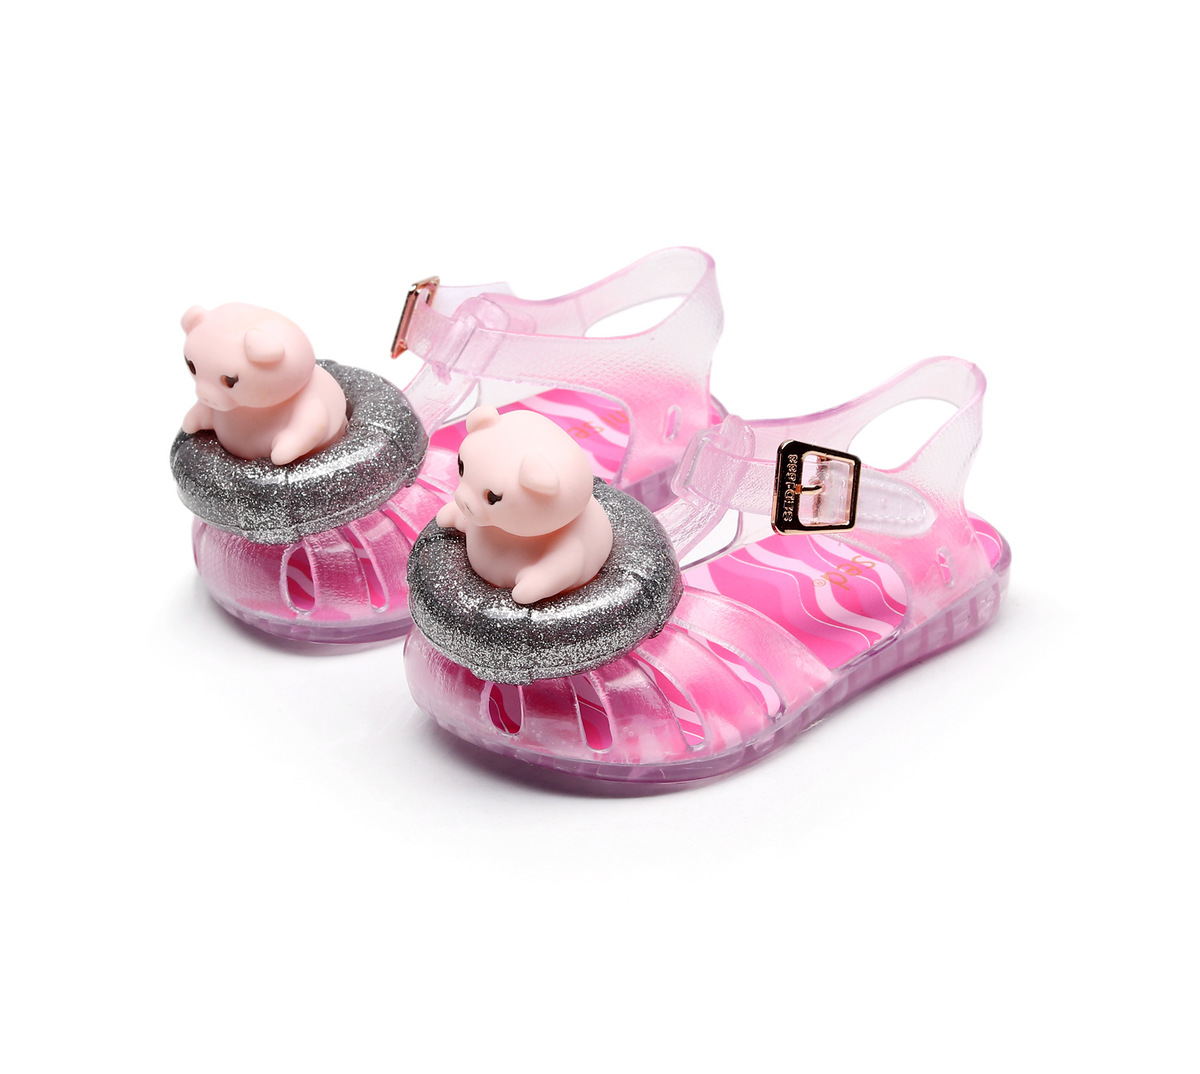 New Childrens Sandals Spring Boys And Girls Cartoon Swim Ring Pig Inlay Baotou Shoes Student Beach Shoes Eur 21 - 28 #2